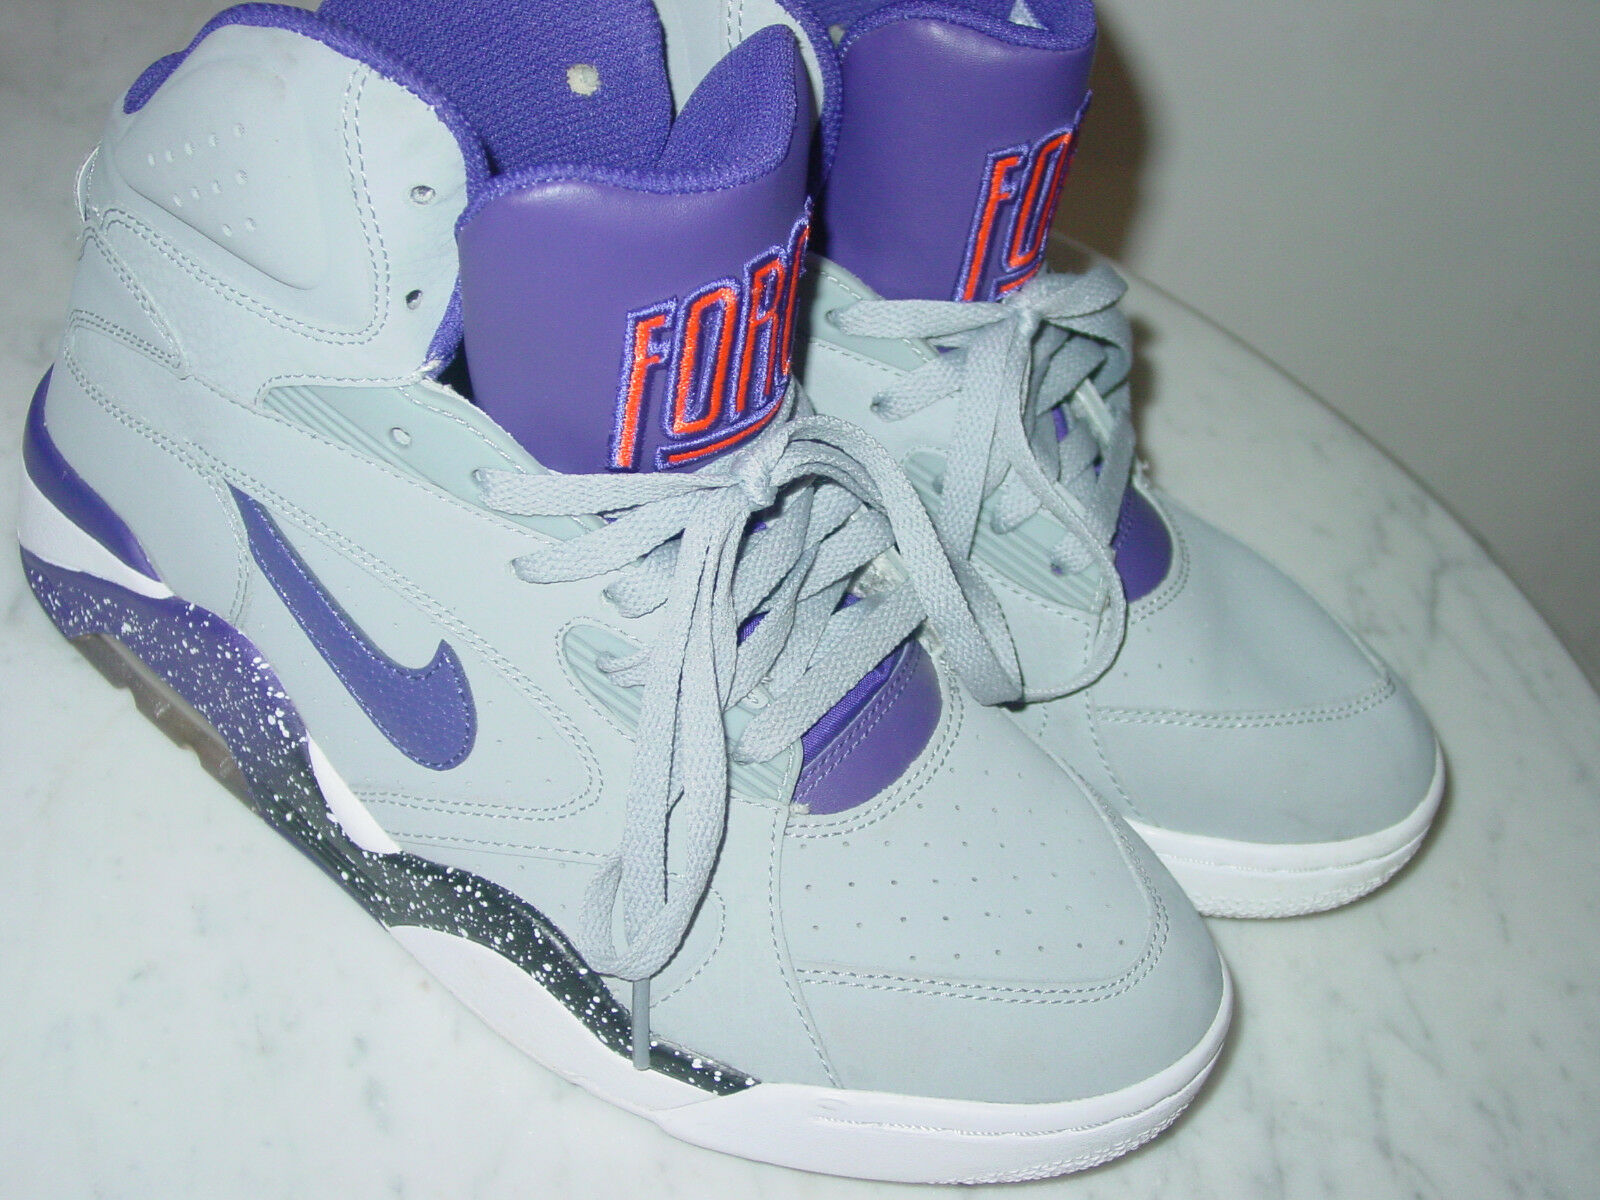 2012 Nike Air Force 180 Wolf Grey/Court Purple Basketball Shoes Size 9   .00